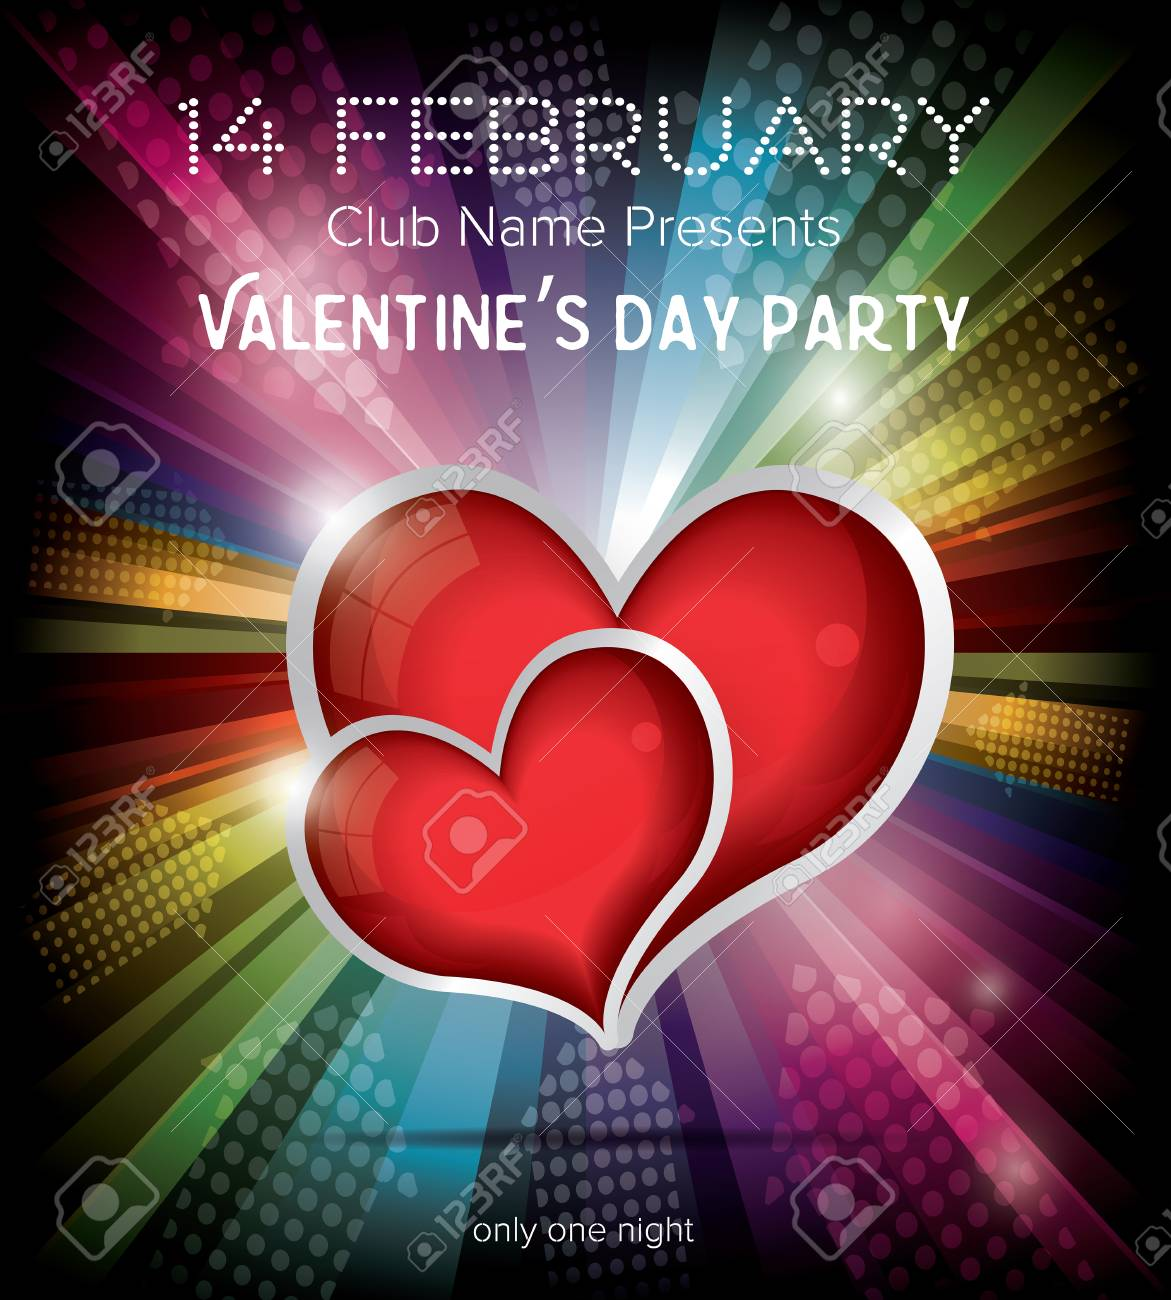 Happy Valentines Day Party Flyer Design Template On Rainbow